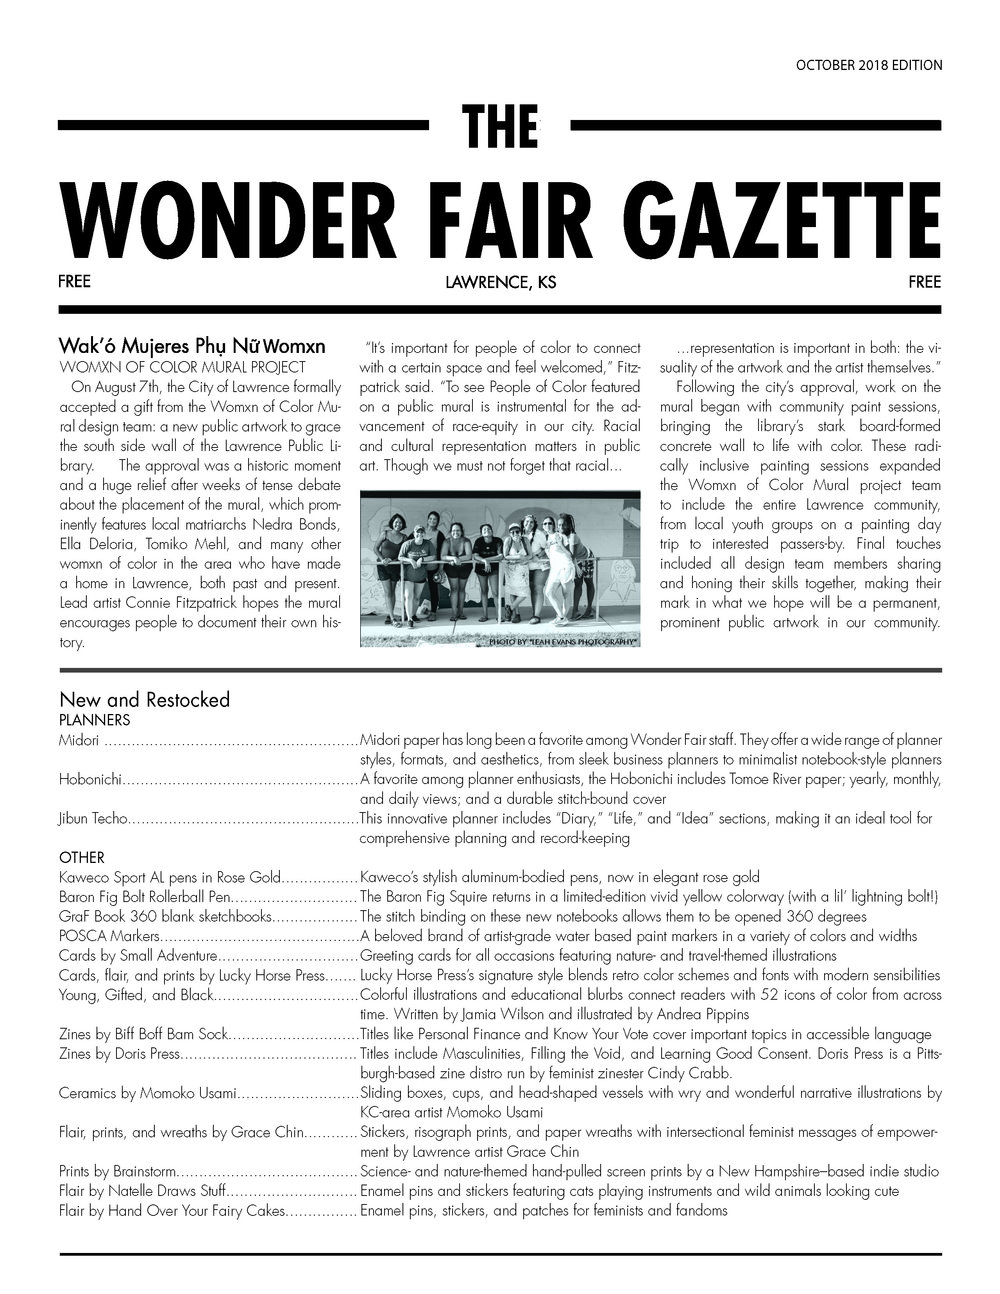 Project_WFG_Layout_October_Print copy (1)_Page_1.jpg